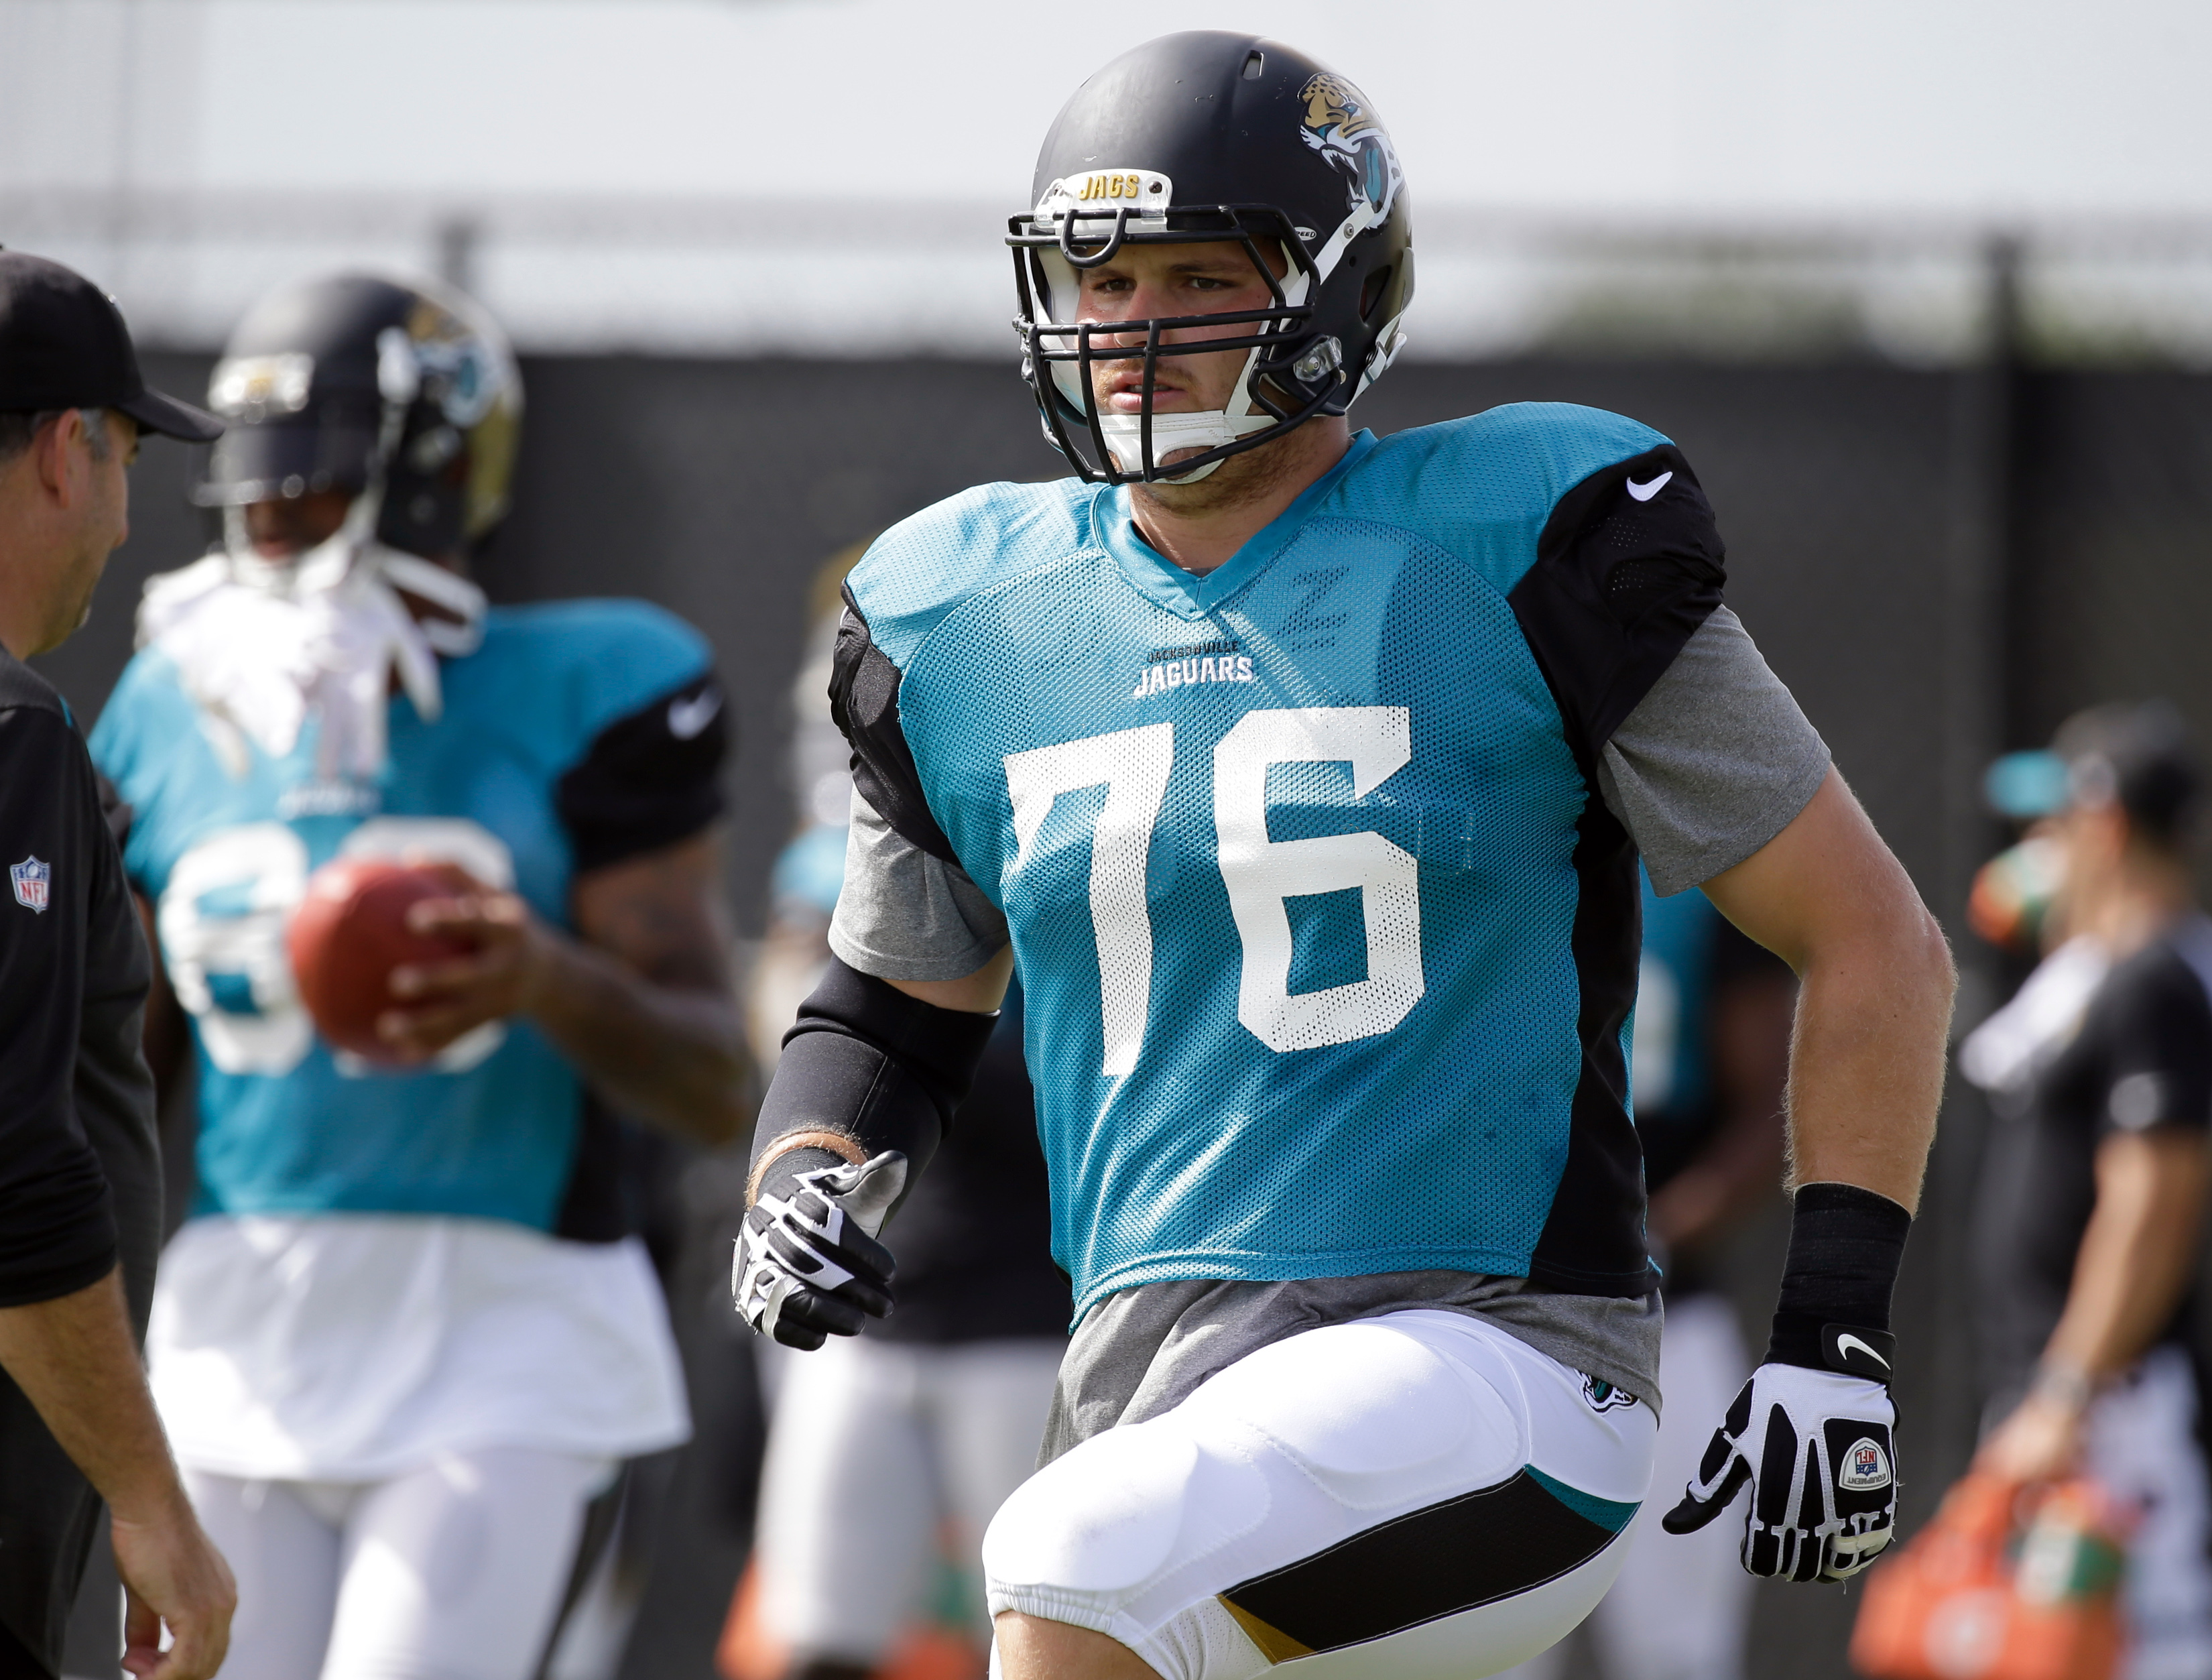 Jacksonville Jaguars offensive tackle Luke Joeckel (76) warms up during NFL football training camp, Tuesday, Aug. 2, 2016, in Jacksonville, Fla. (AP Photo/John Raoux)